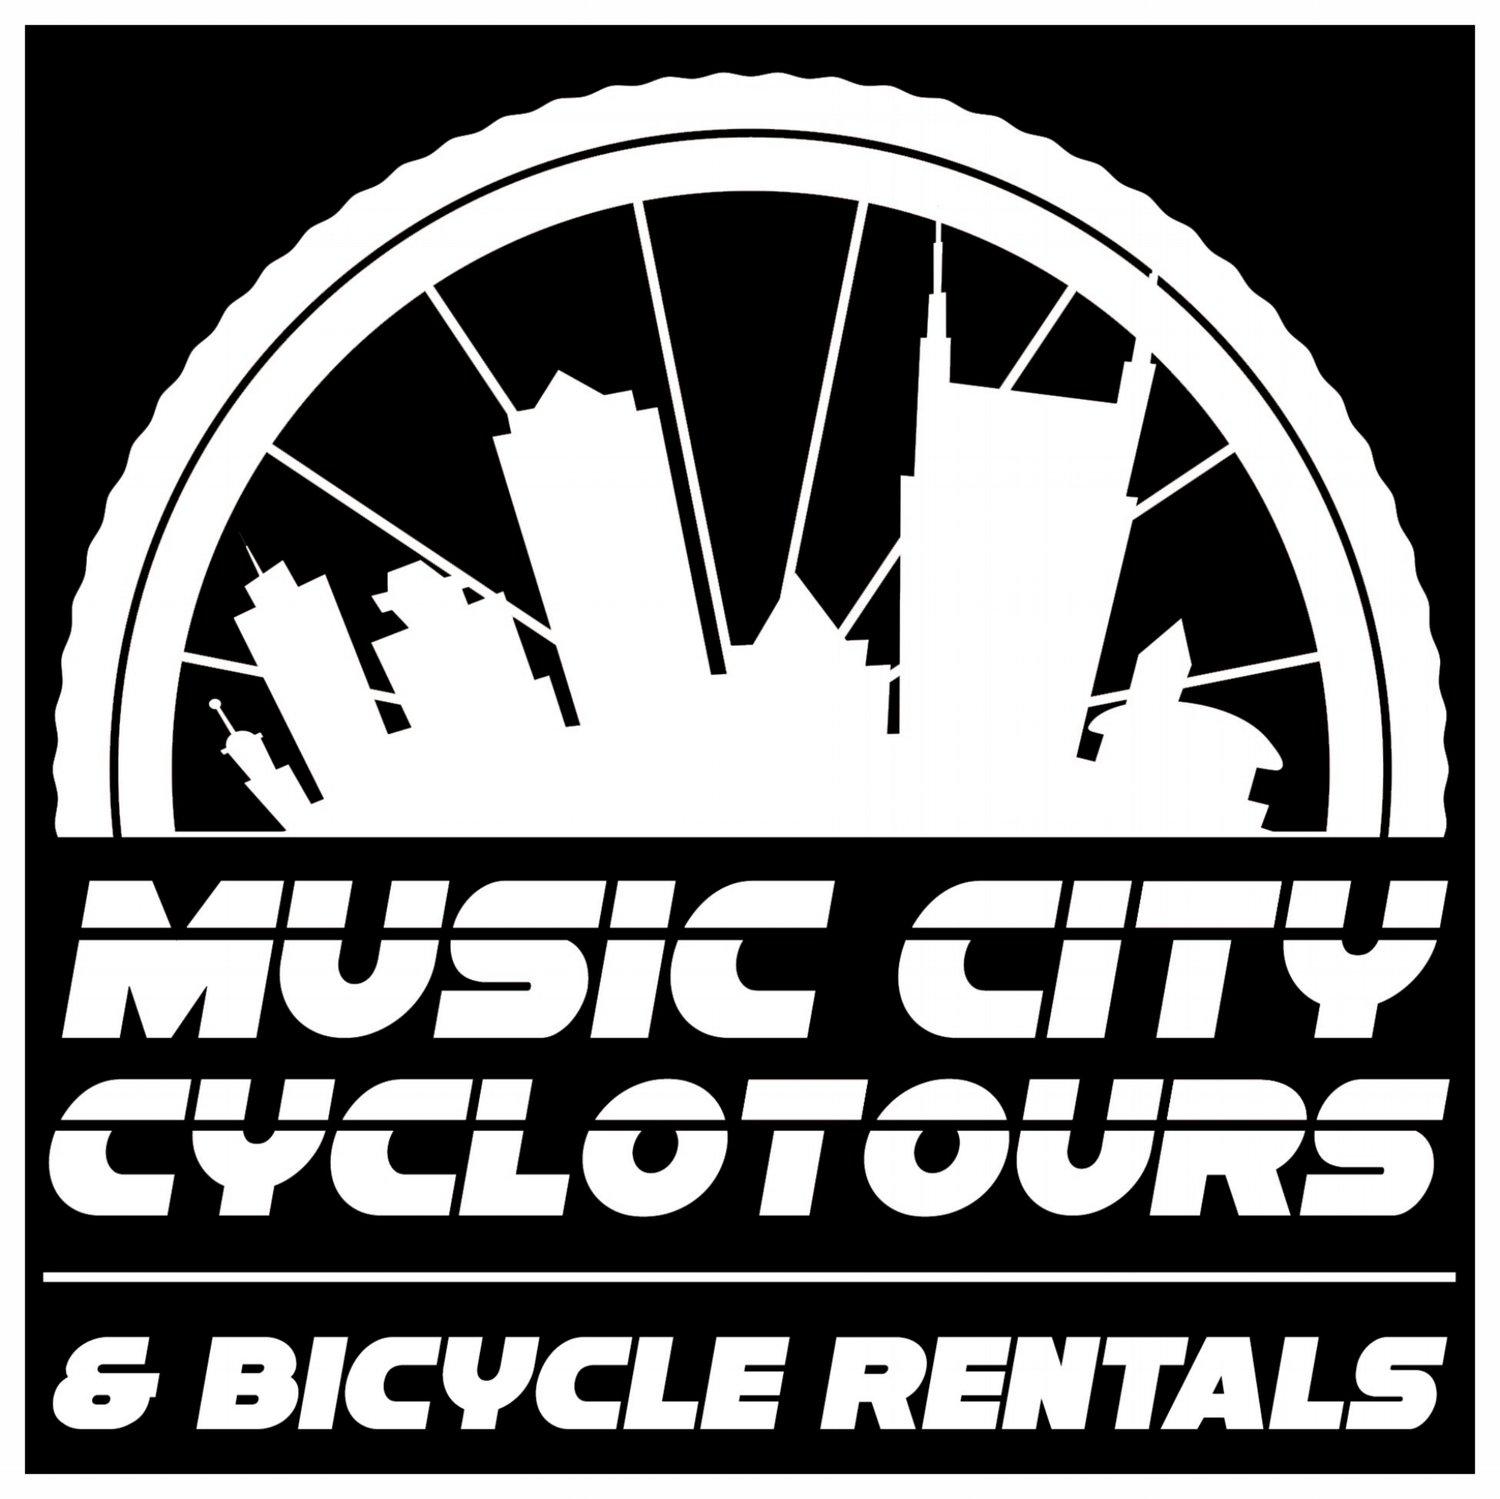 Music City Cyclotours & Bicycle Rentals